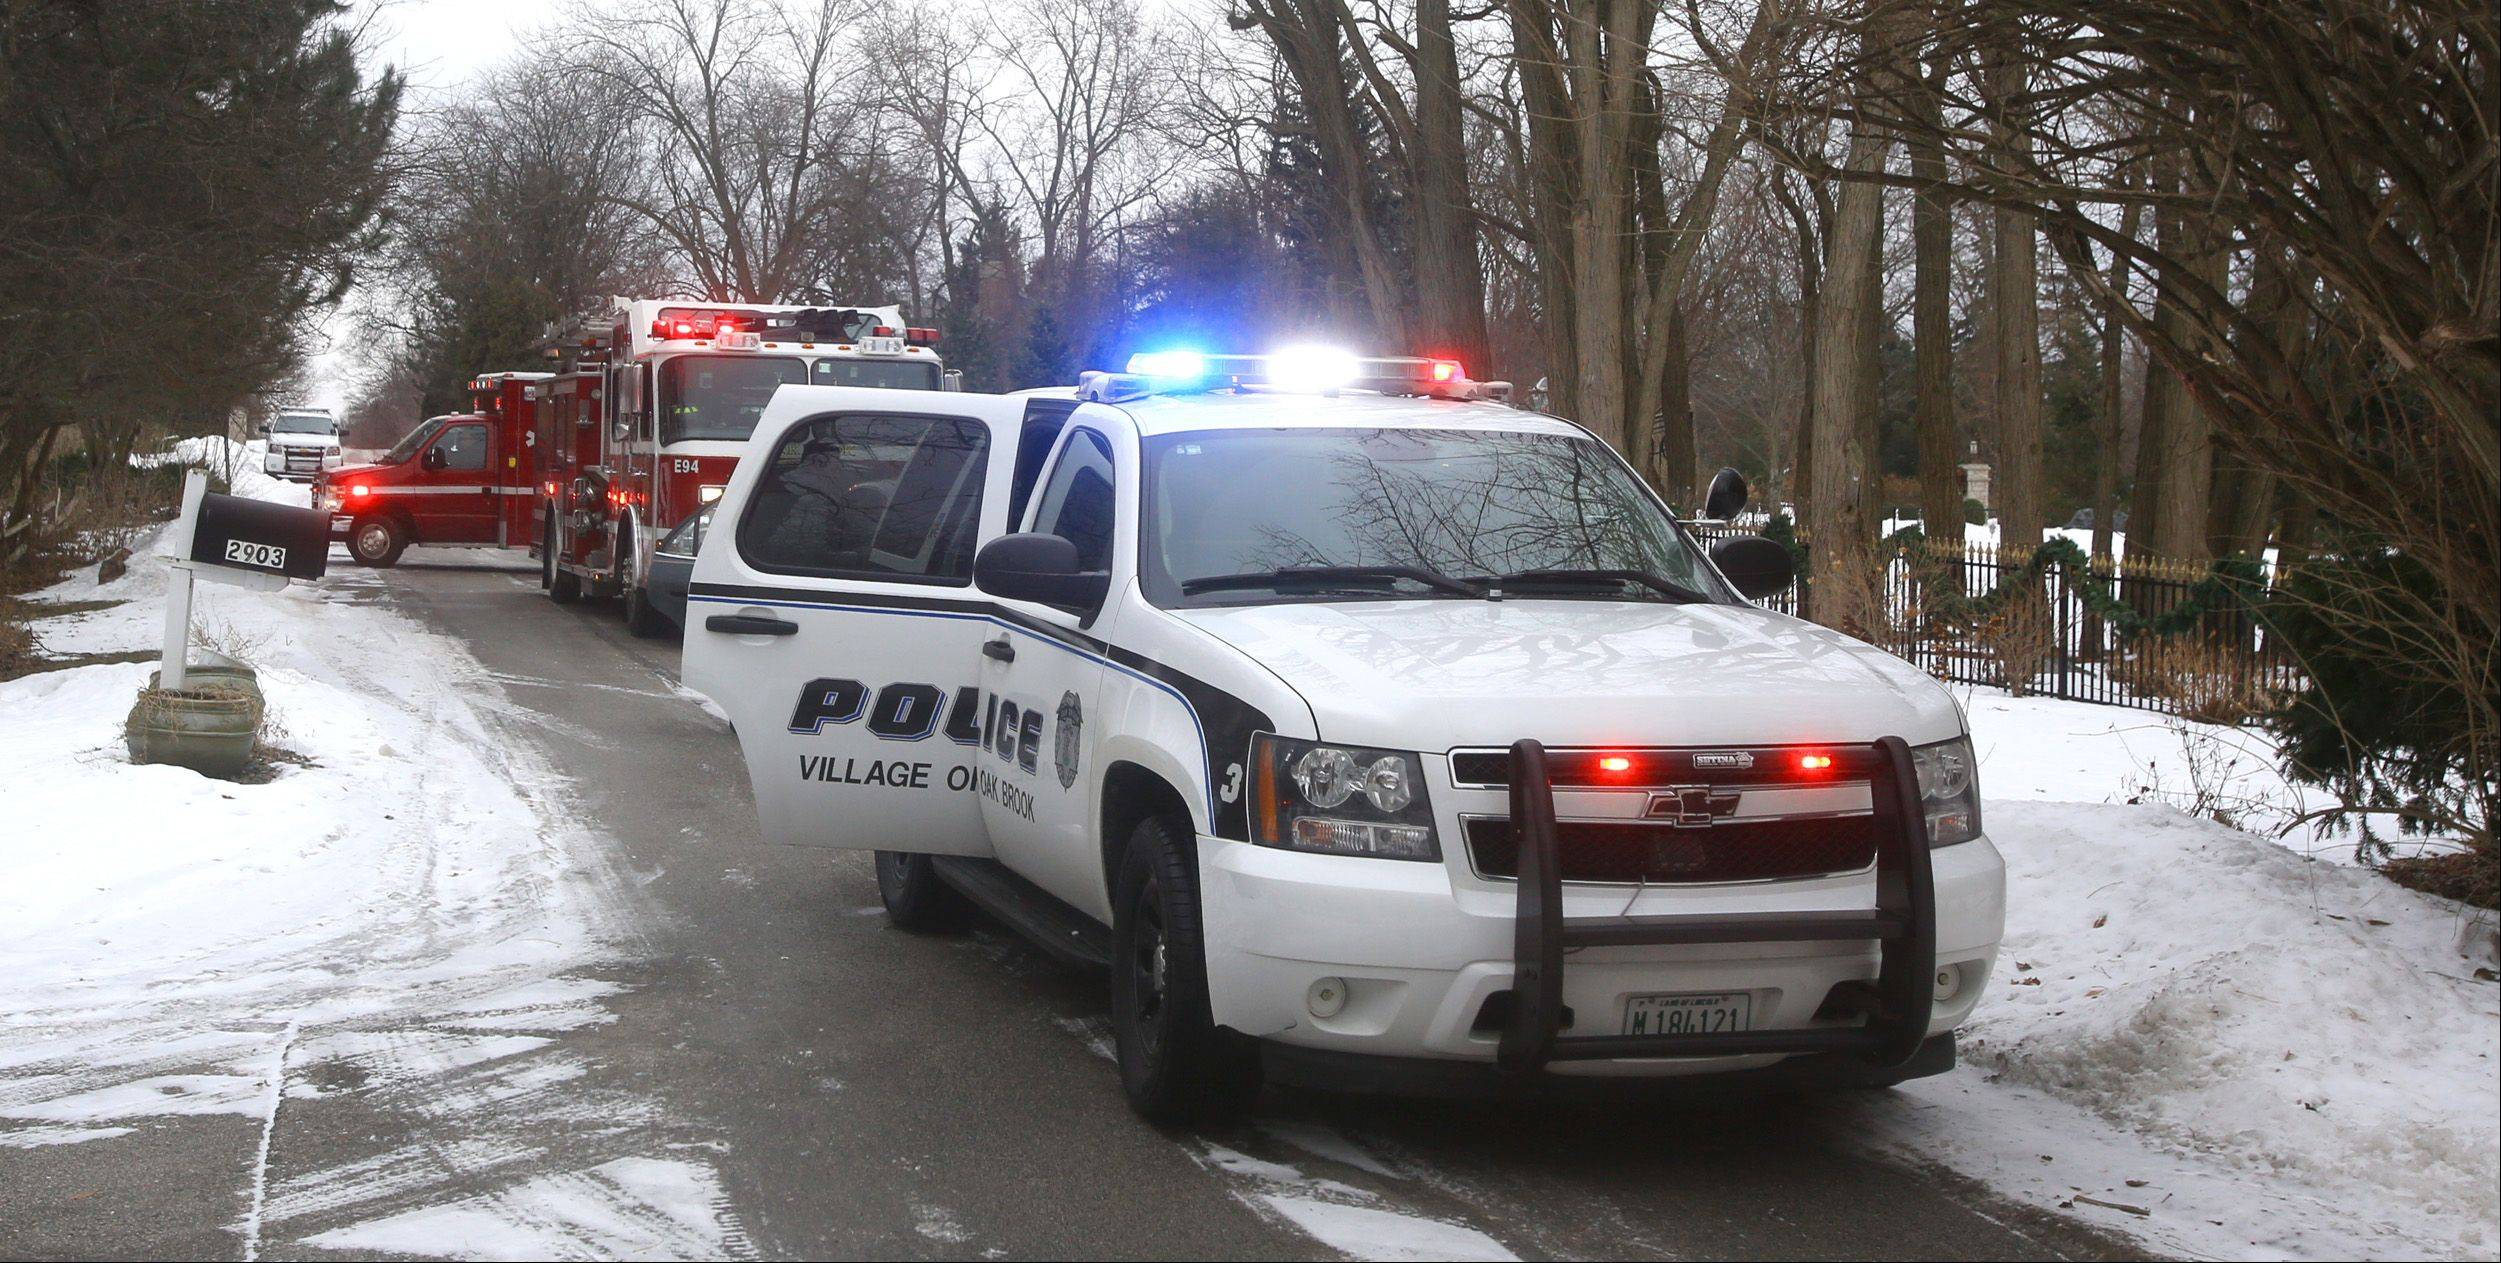 Police and fire departments from Oak Brook and surrounding suburbs are investigating a fatal carbon monoxide poisoning death in a house in a gated community on Oak Brook Hills Road, north of 31st Street.